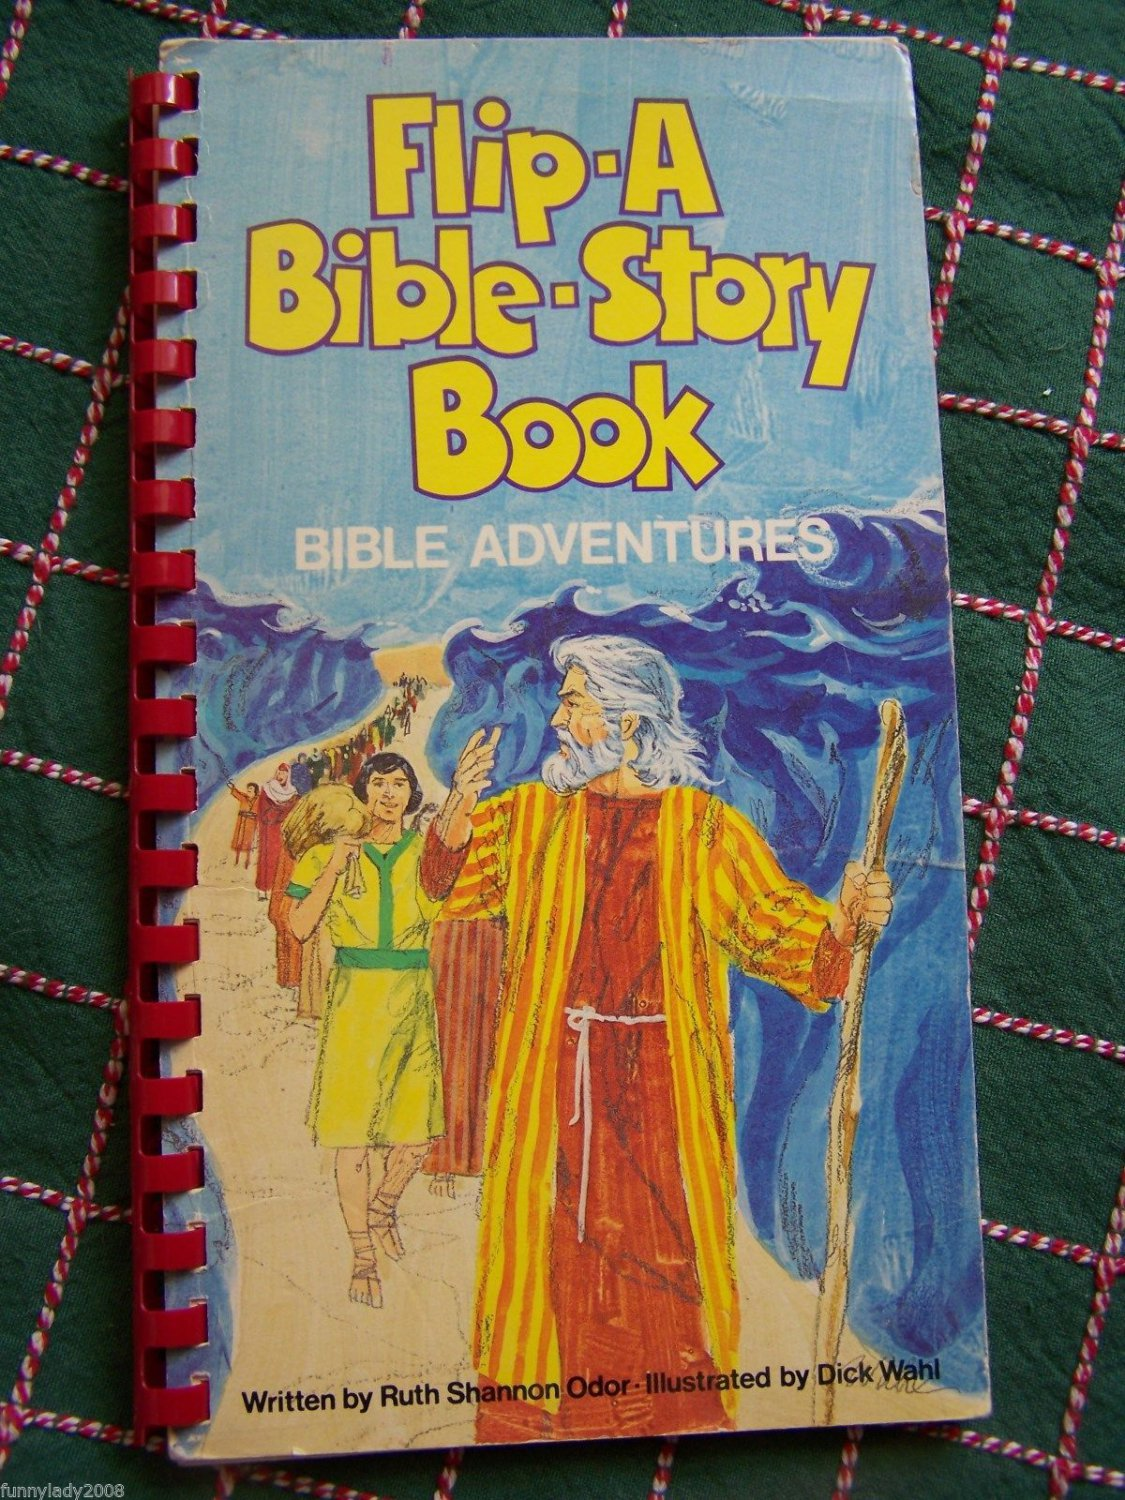 Vintage 1980's Flip A Bible Story Book Adventures Children's Scriptures Spiritual Stories